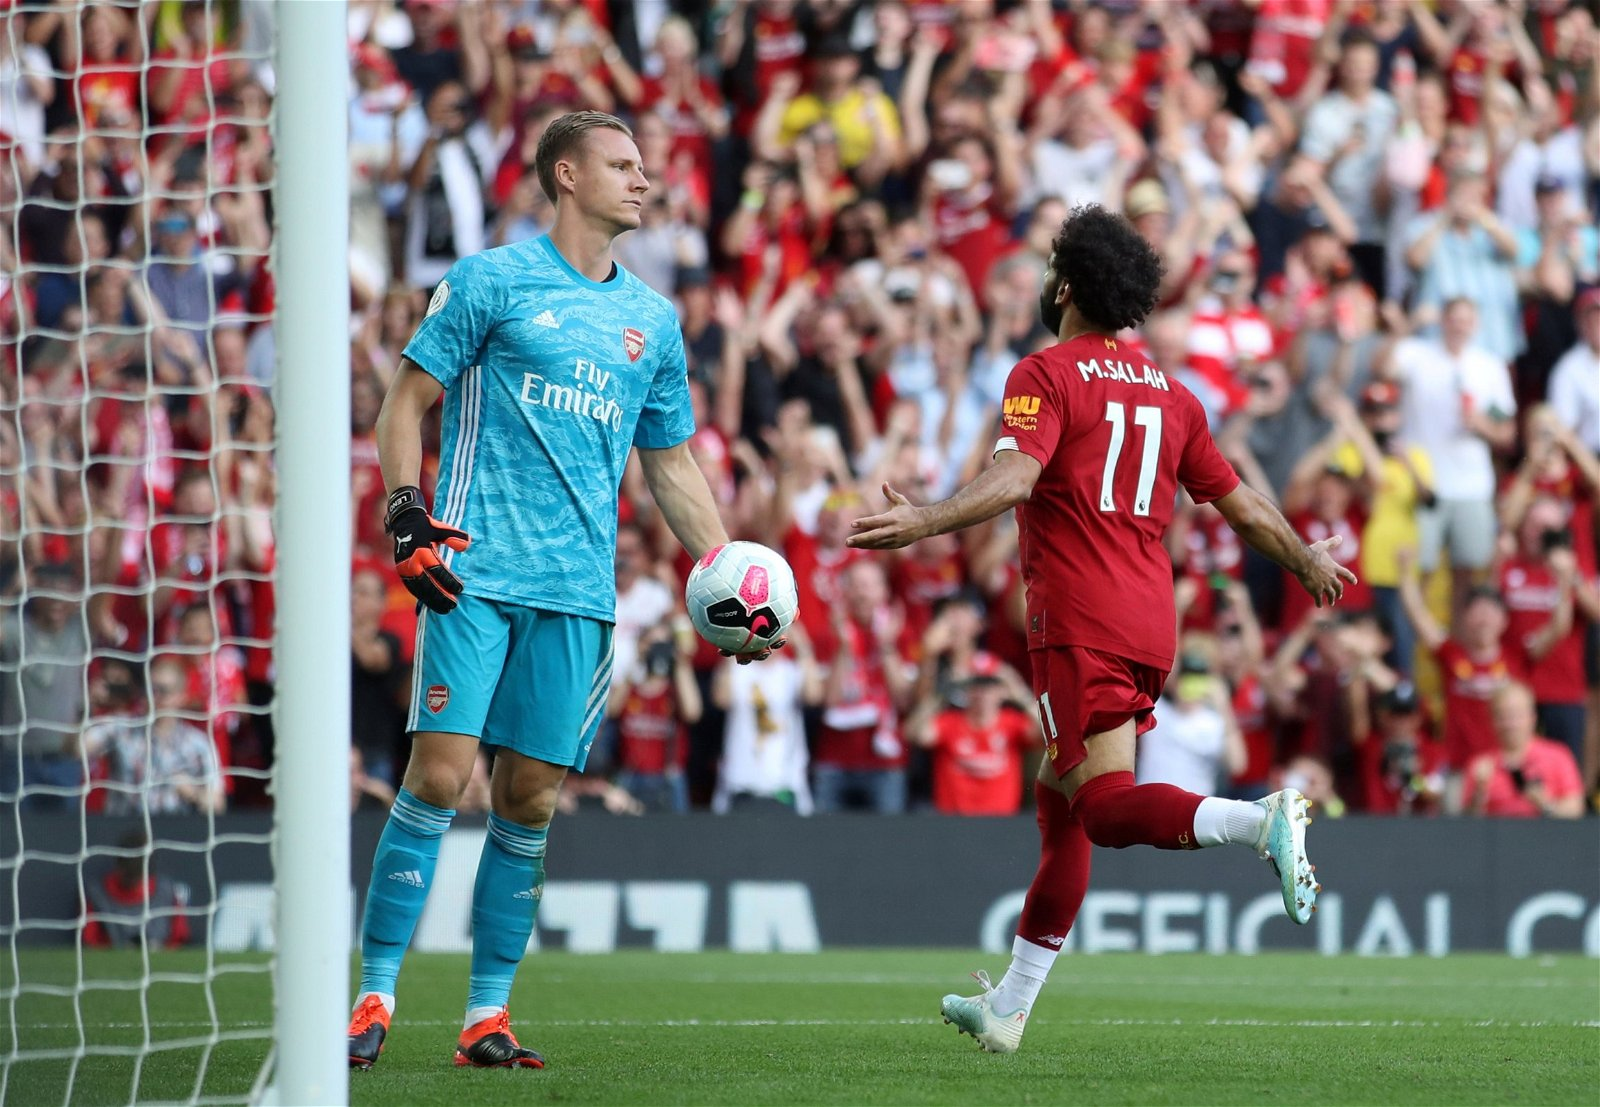 Salah celebrates after putting his second past Leno - [Image] - Liverpool's dominance perfectly captured by this picture of Mohamed Salah